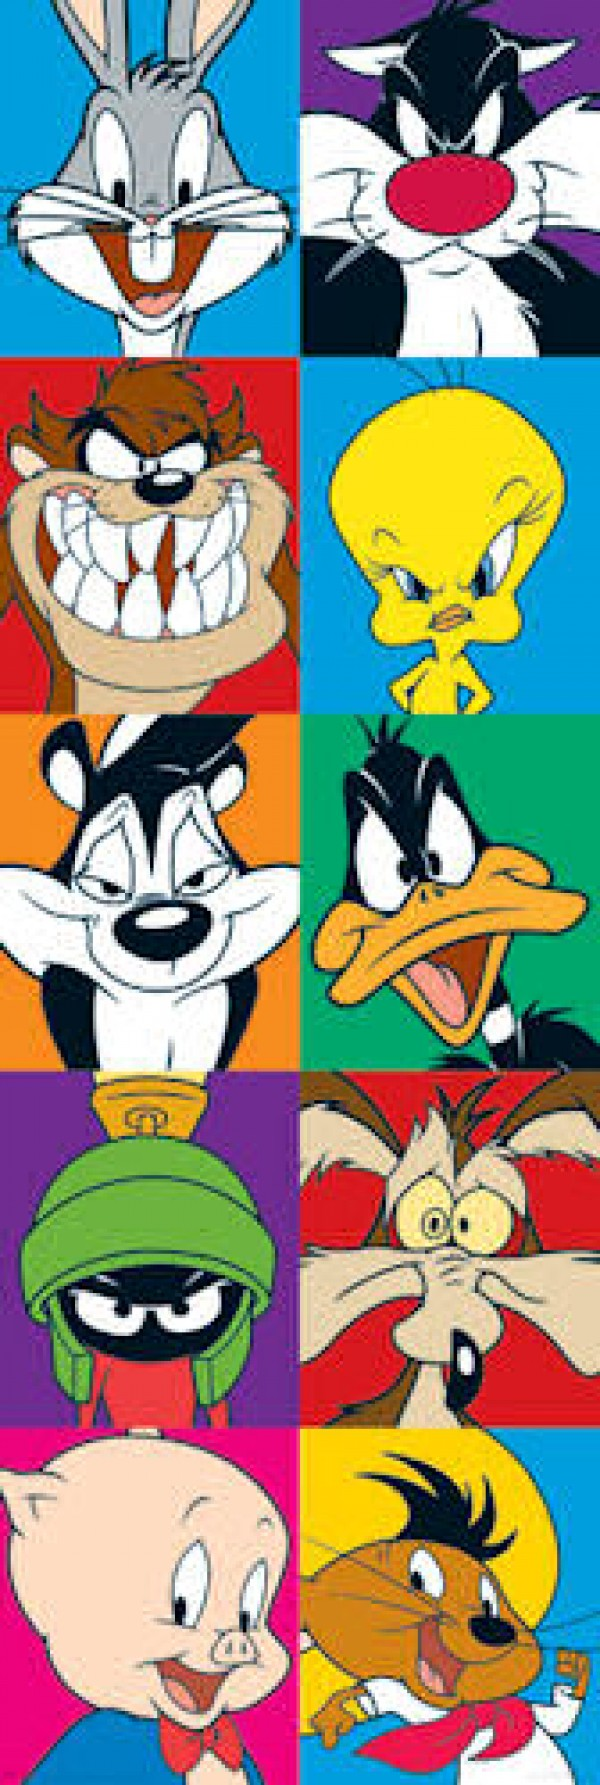 Looney Tunes Door Poster